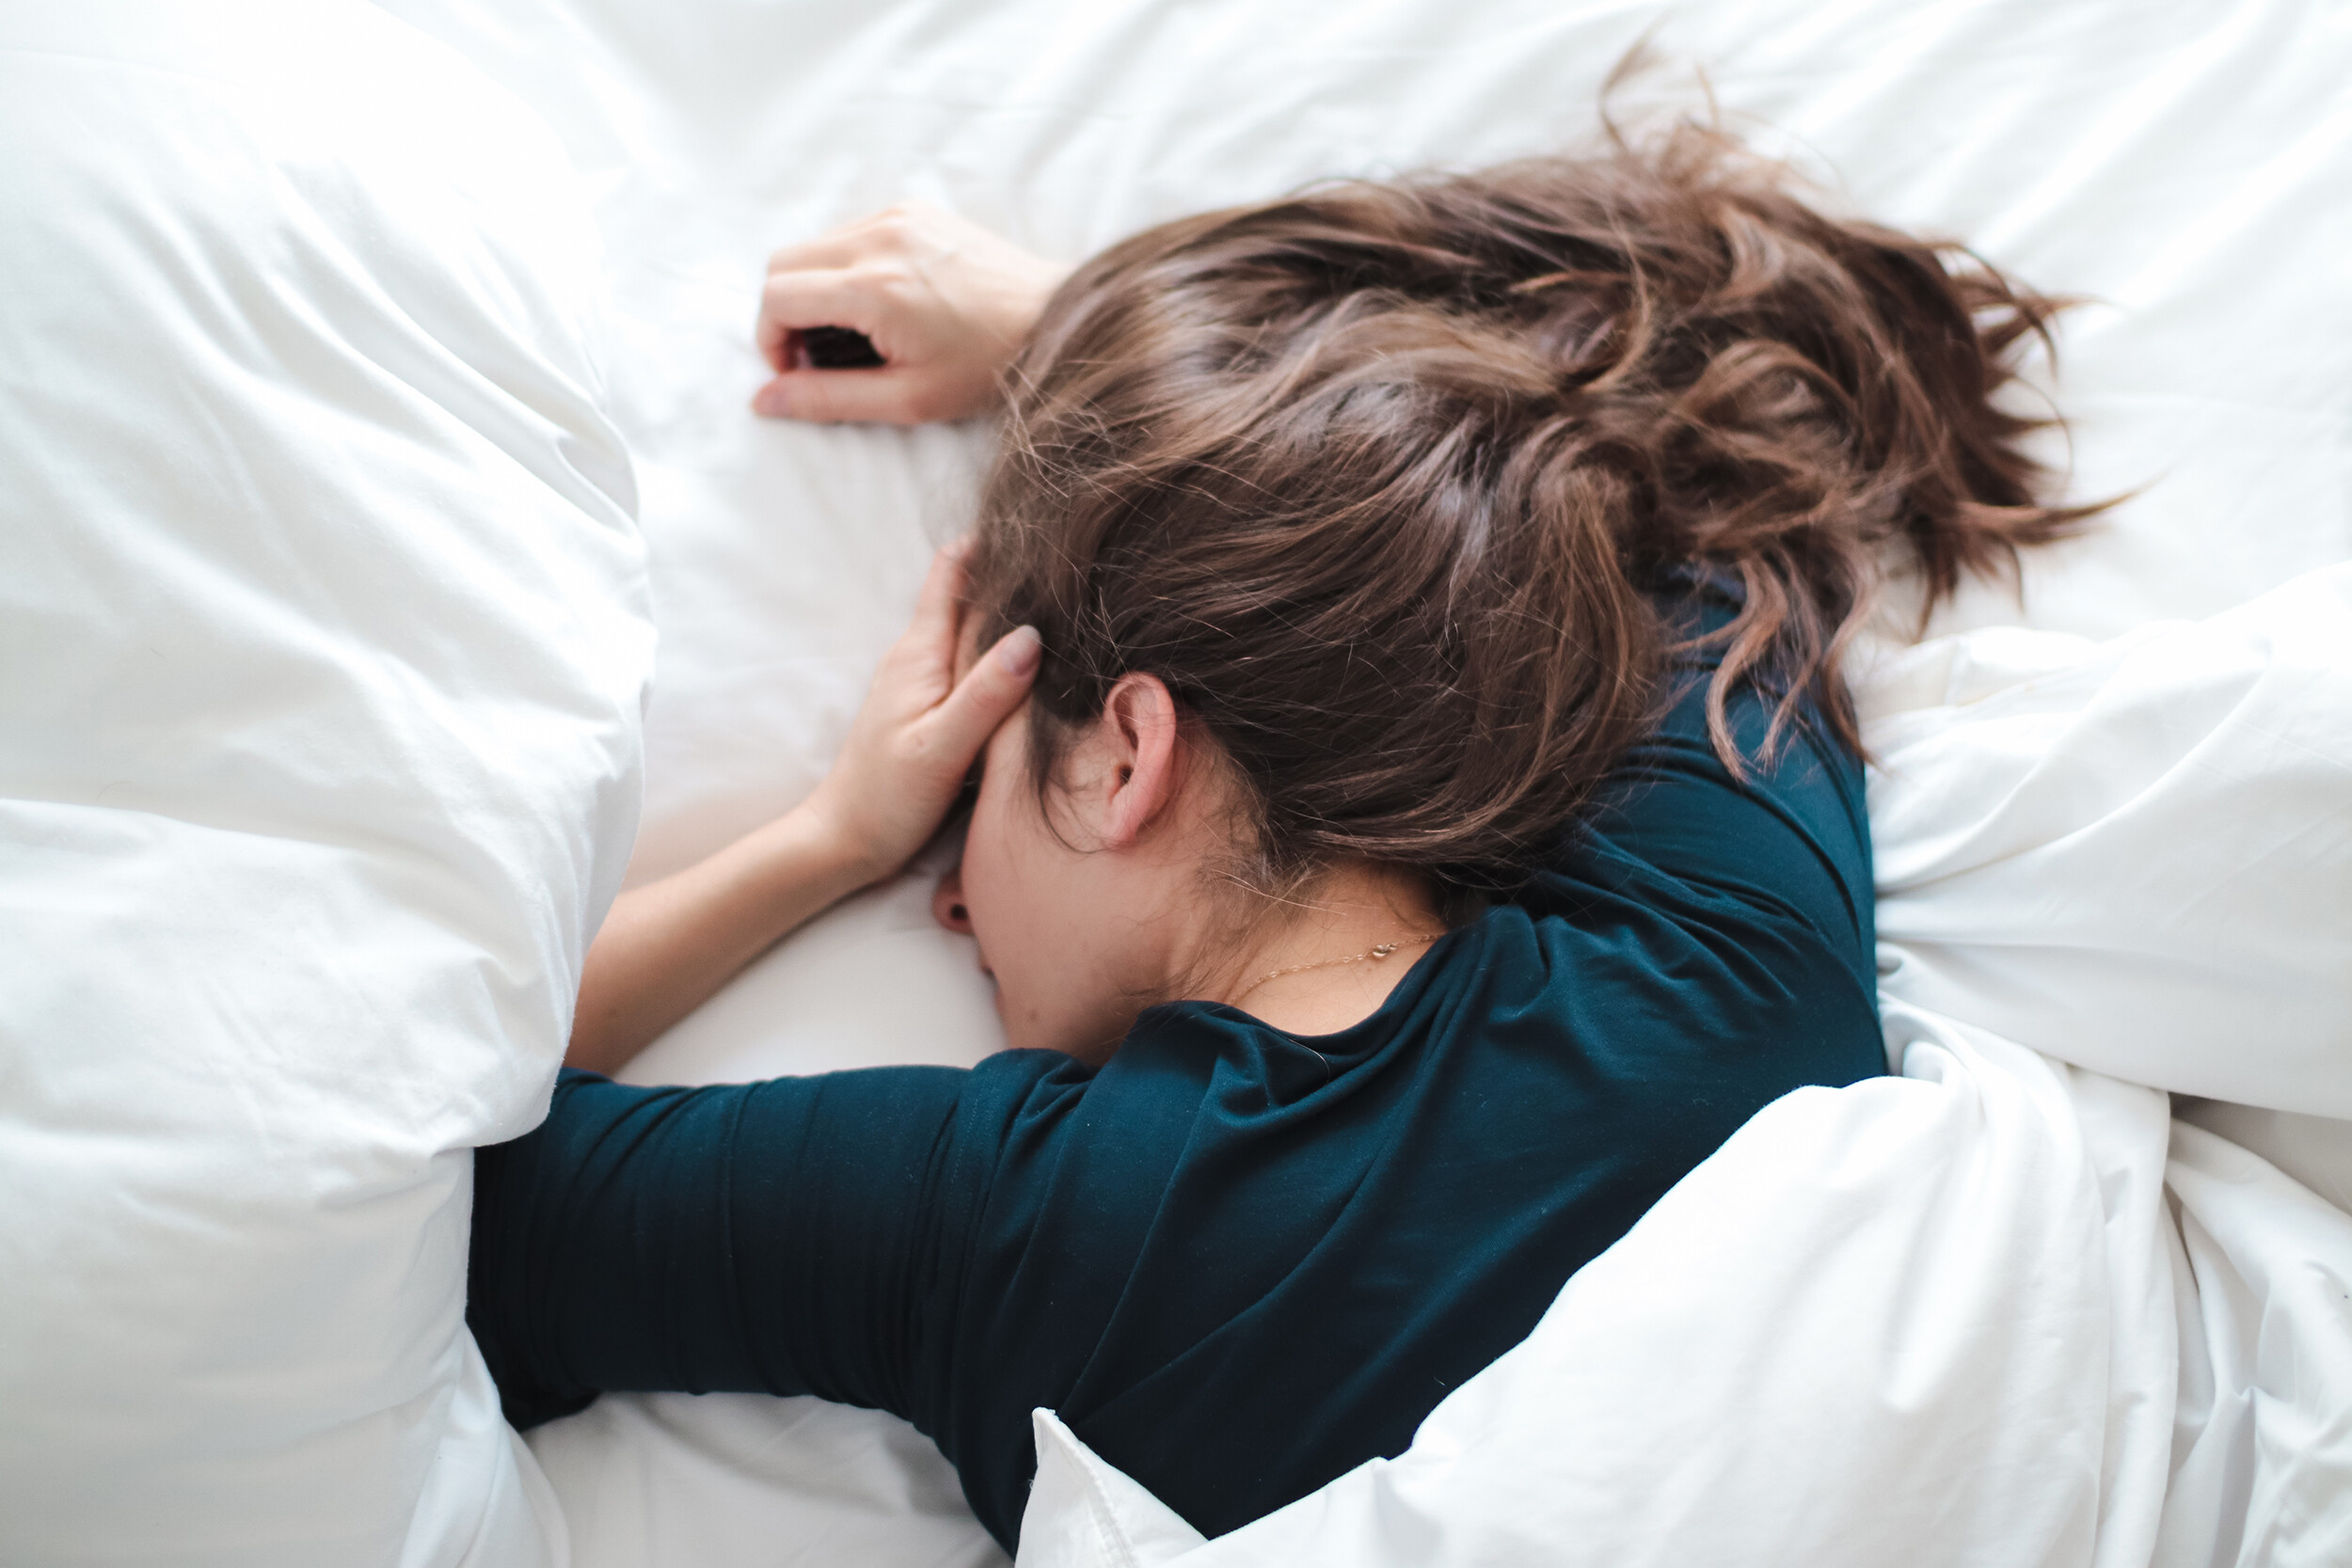 People with migraines get less REM sleep, study finds